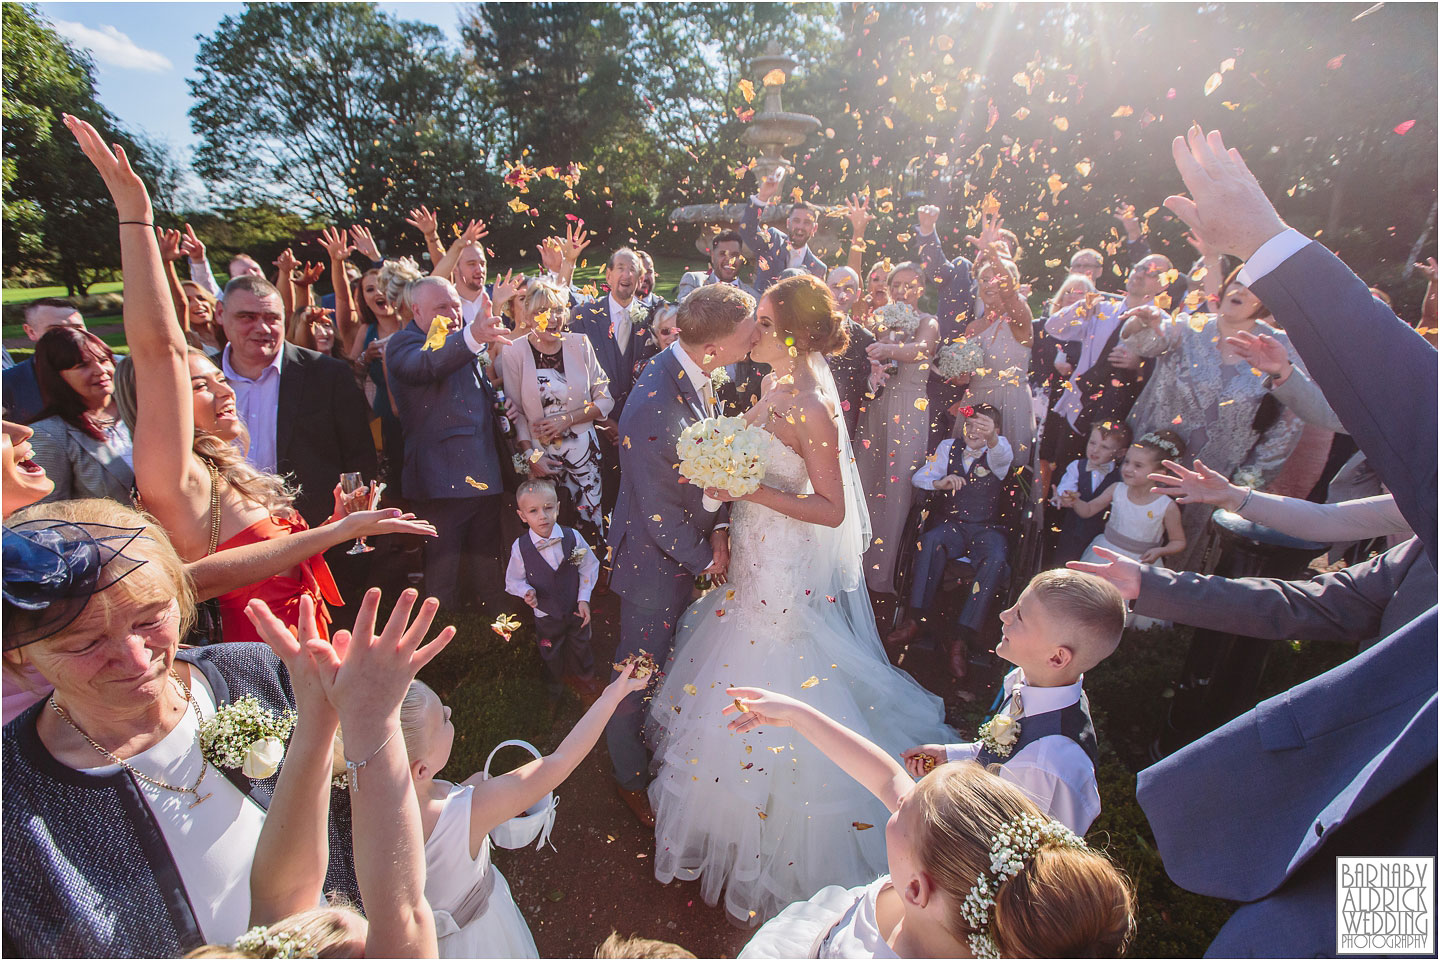 Oulton Hall Confetti, autumn wedding photo at Oulton Hall, Leeds wedding venues, West Yorkshire wedding hotels